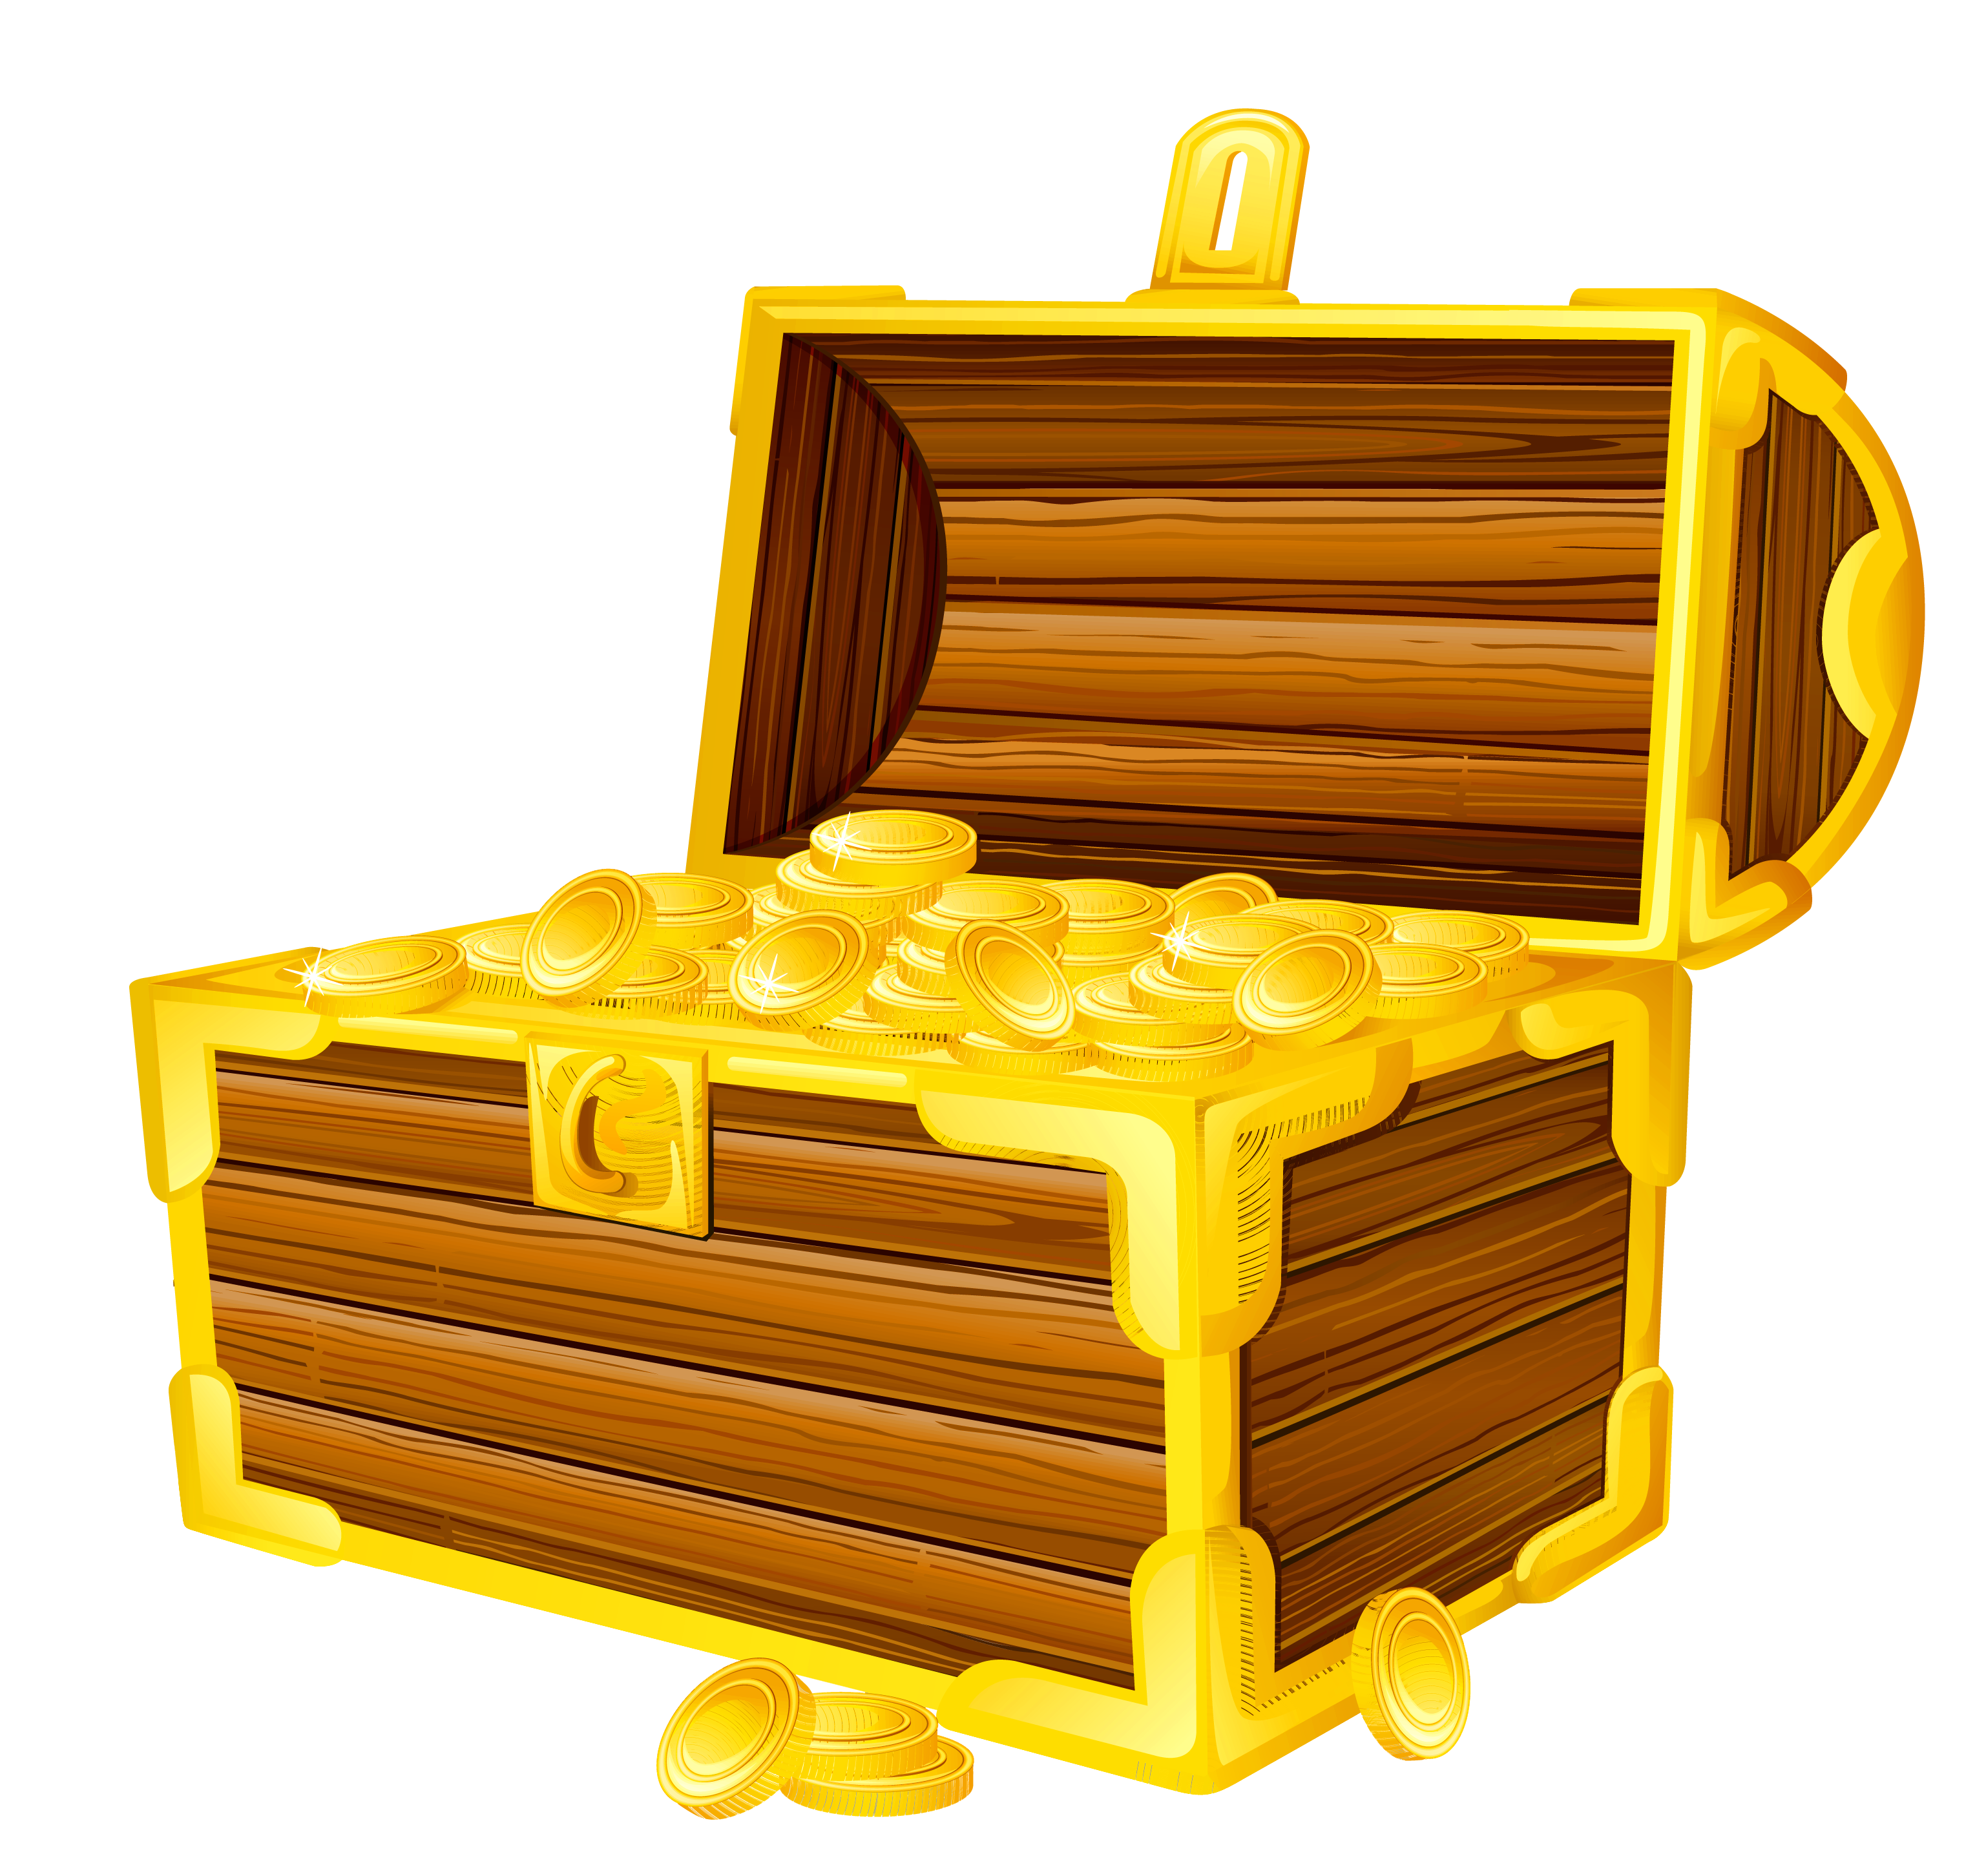 Png picture gallery yopriceville. Clipart key treasure chest